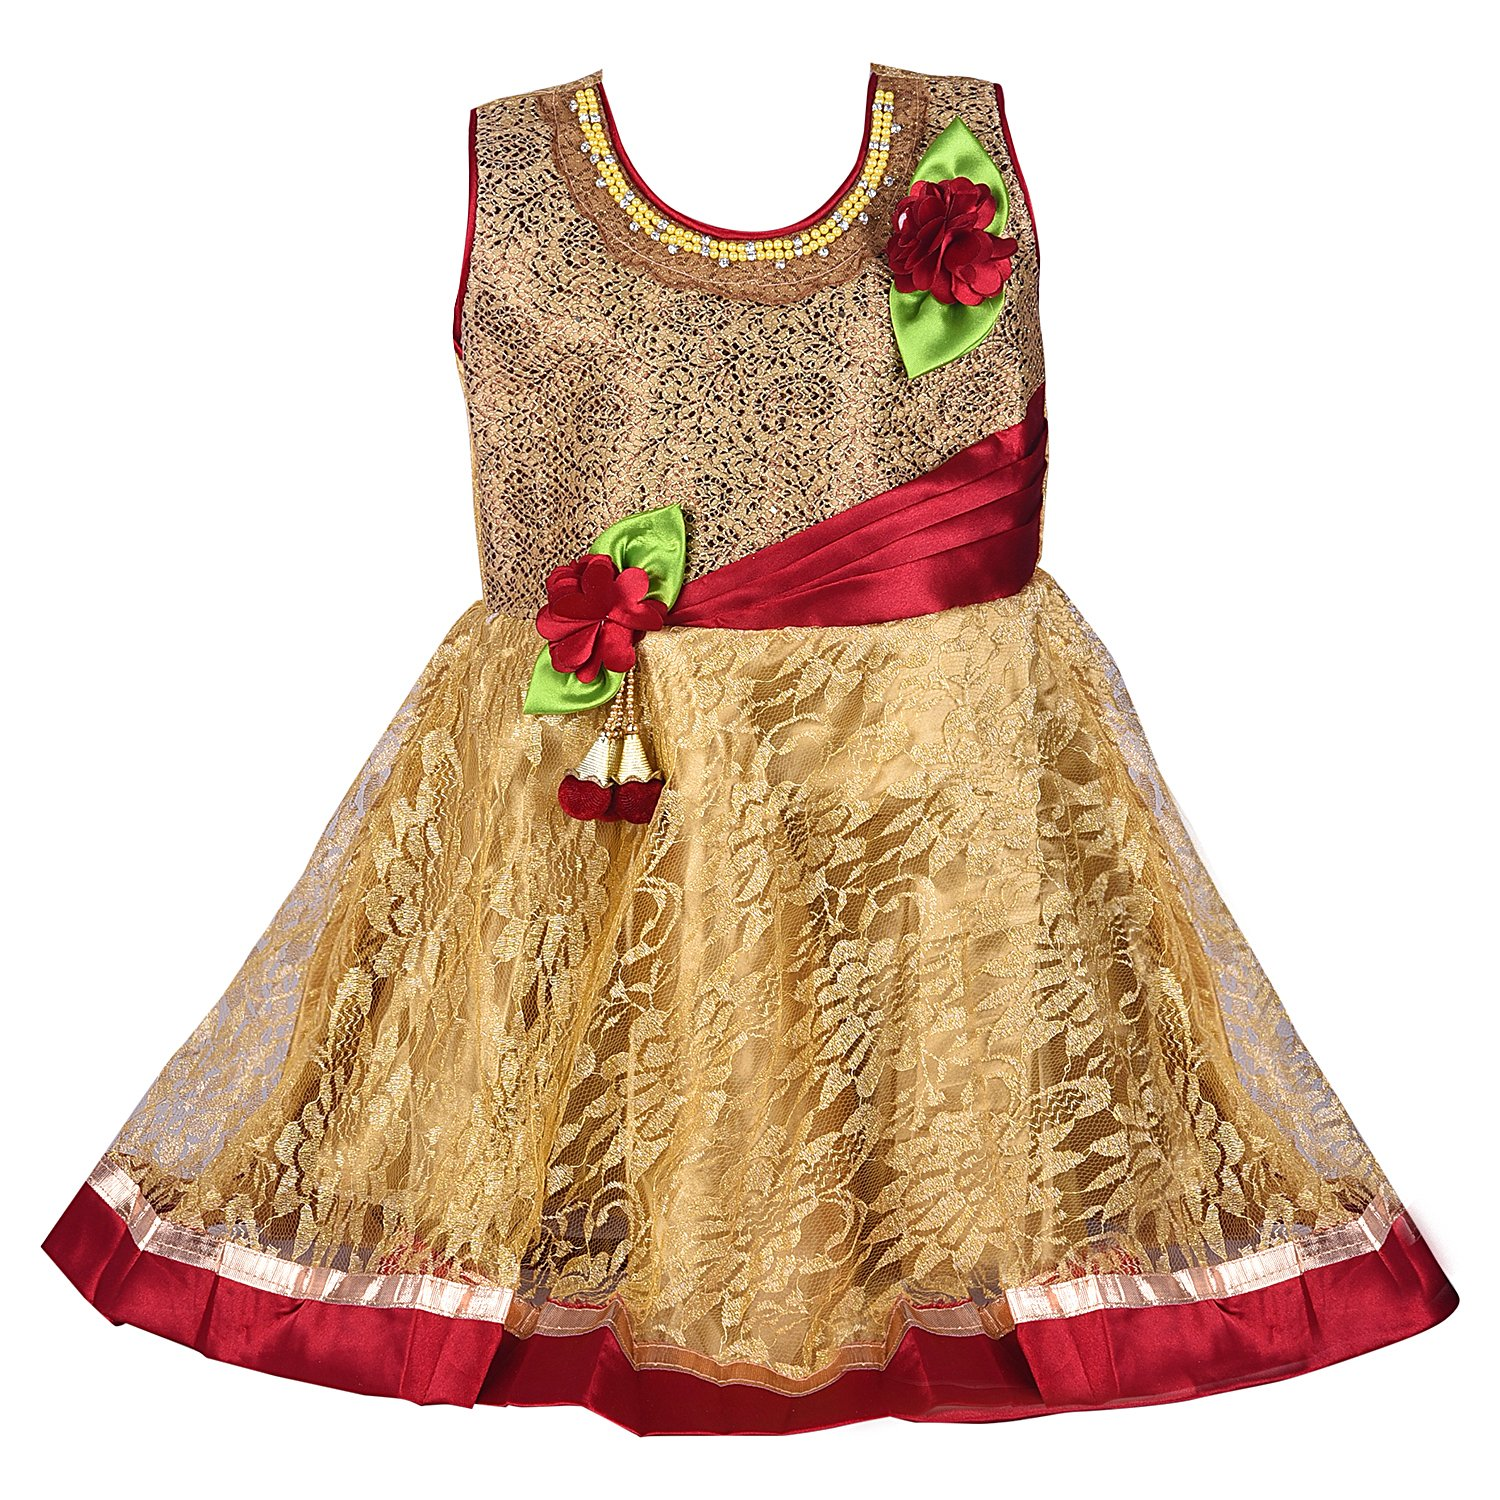 f3149d8b04db HomeProductGirl s ClothingWish Karo Party wear Baby Girls Frock Dress  DNfr1525. 🔍. Girl s Clothing